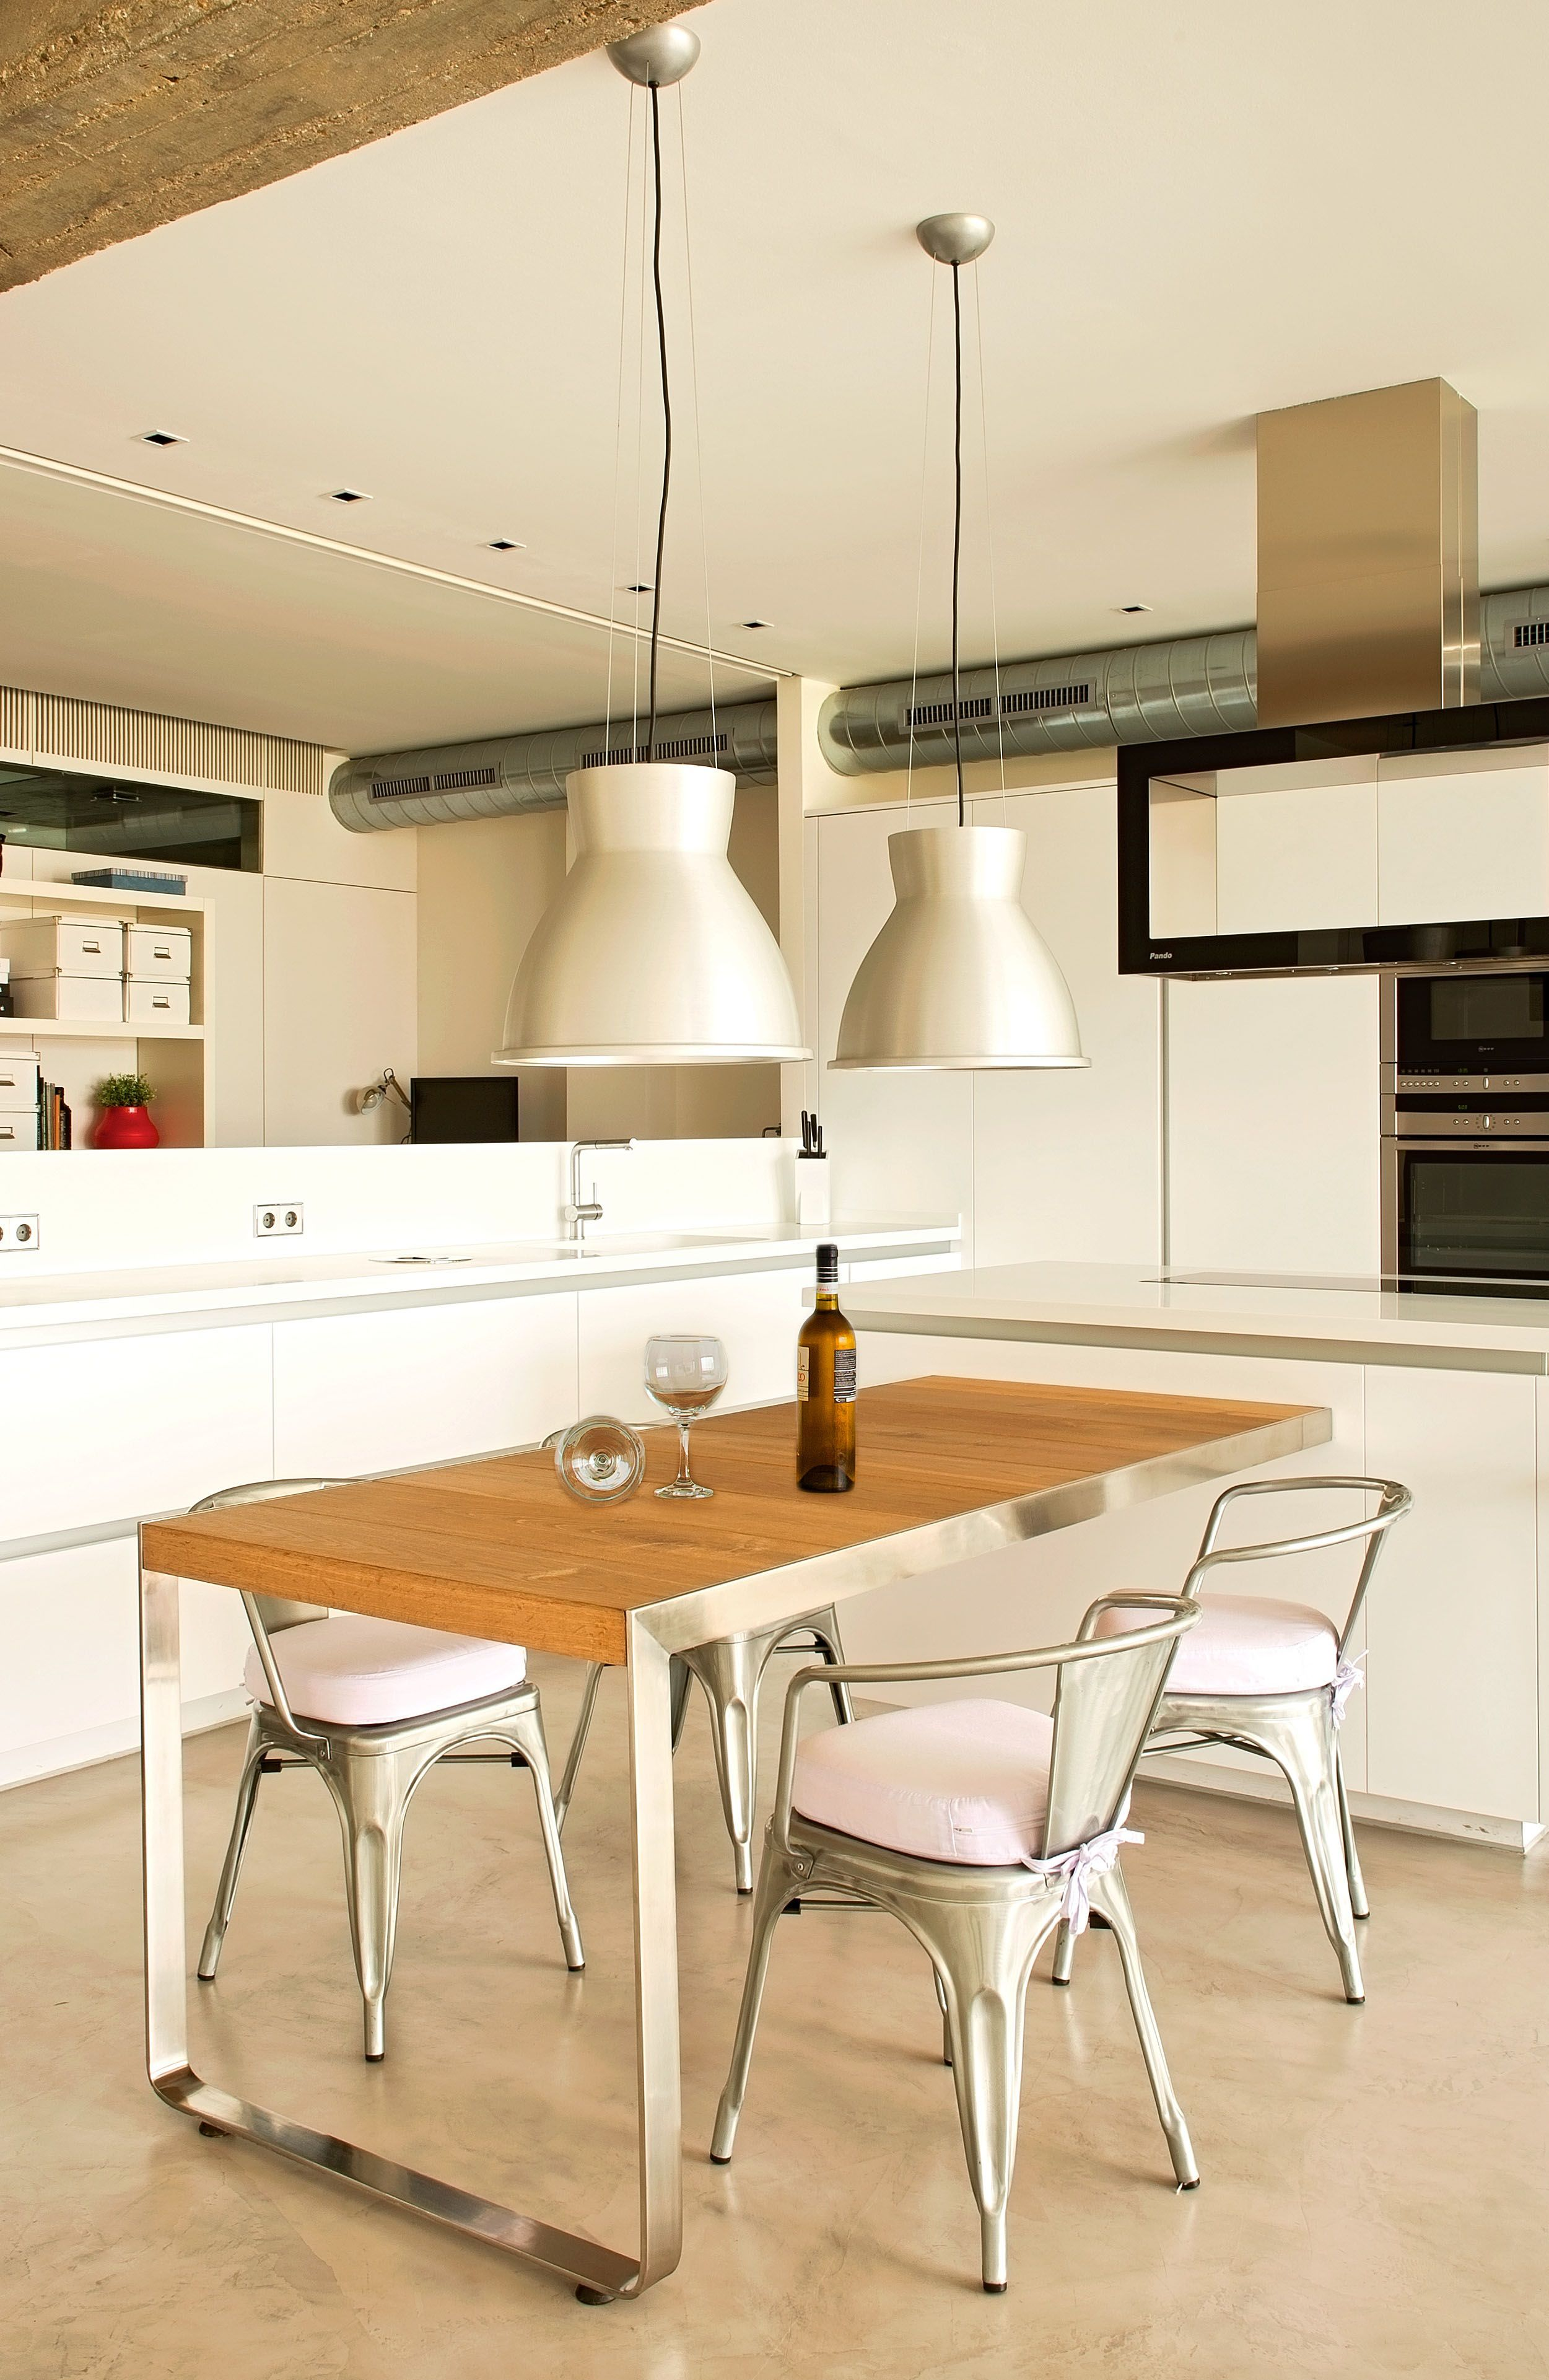 Pin de Plan Reforma en Interiorismo y decoración | Pinterest ...